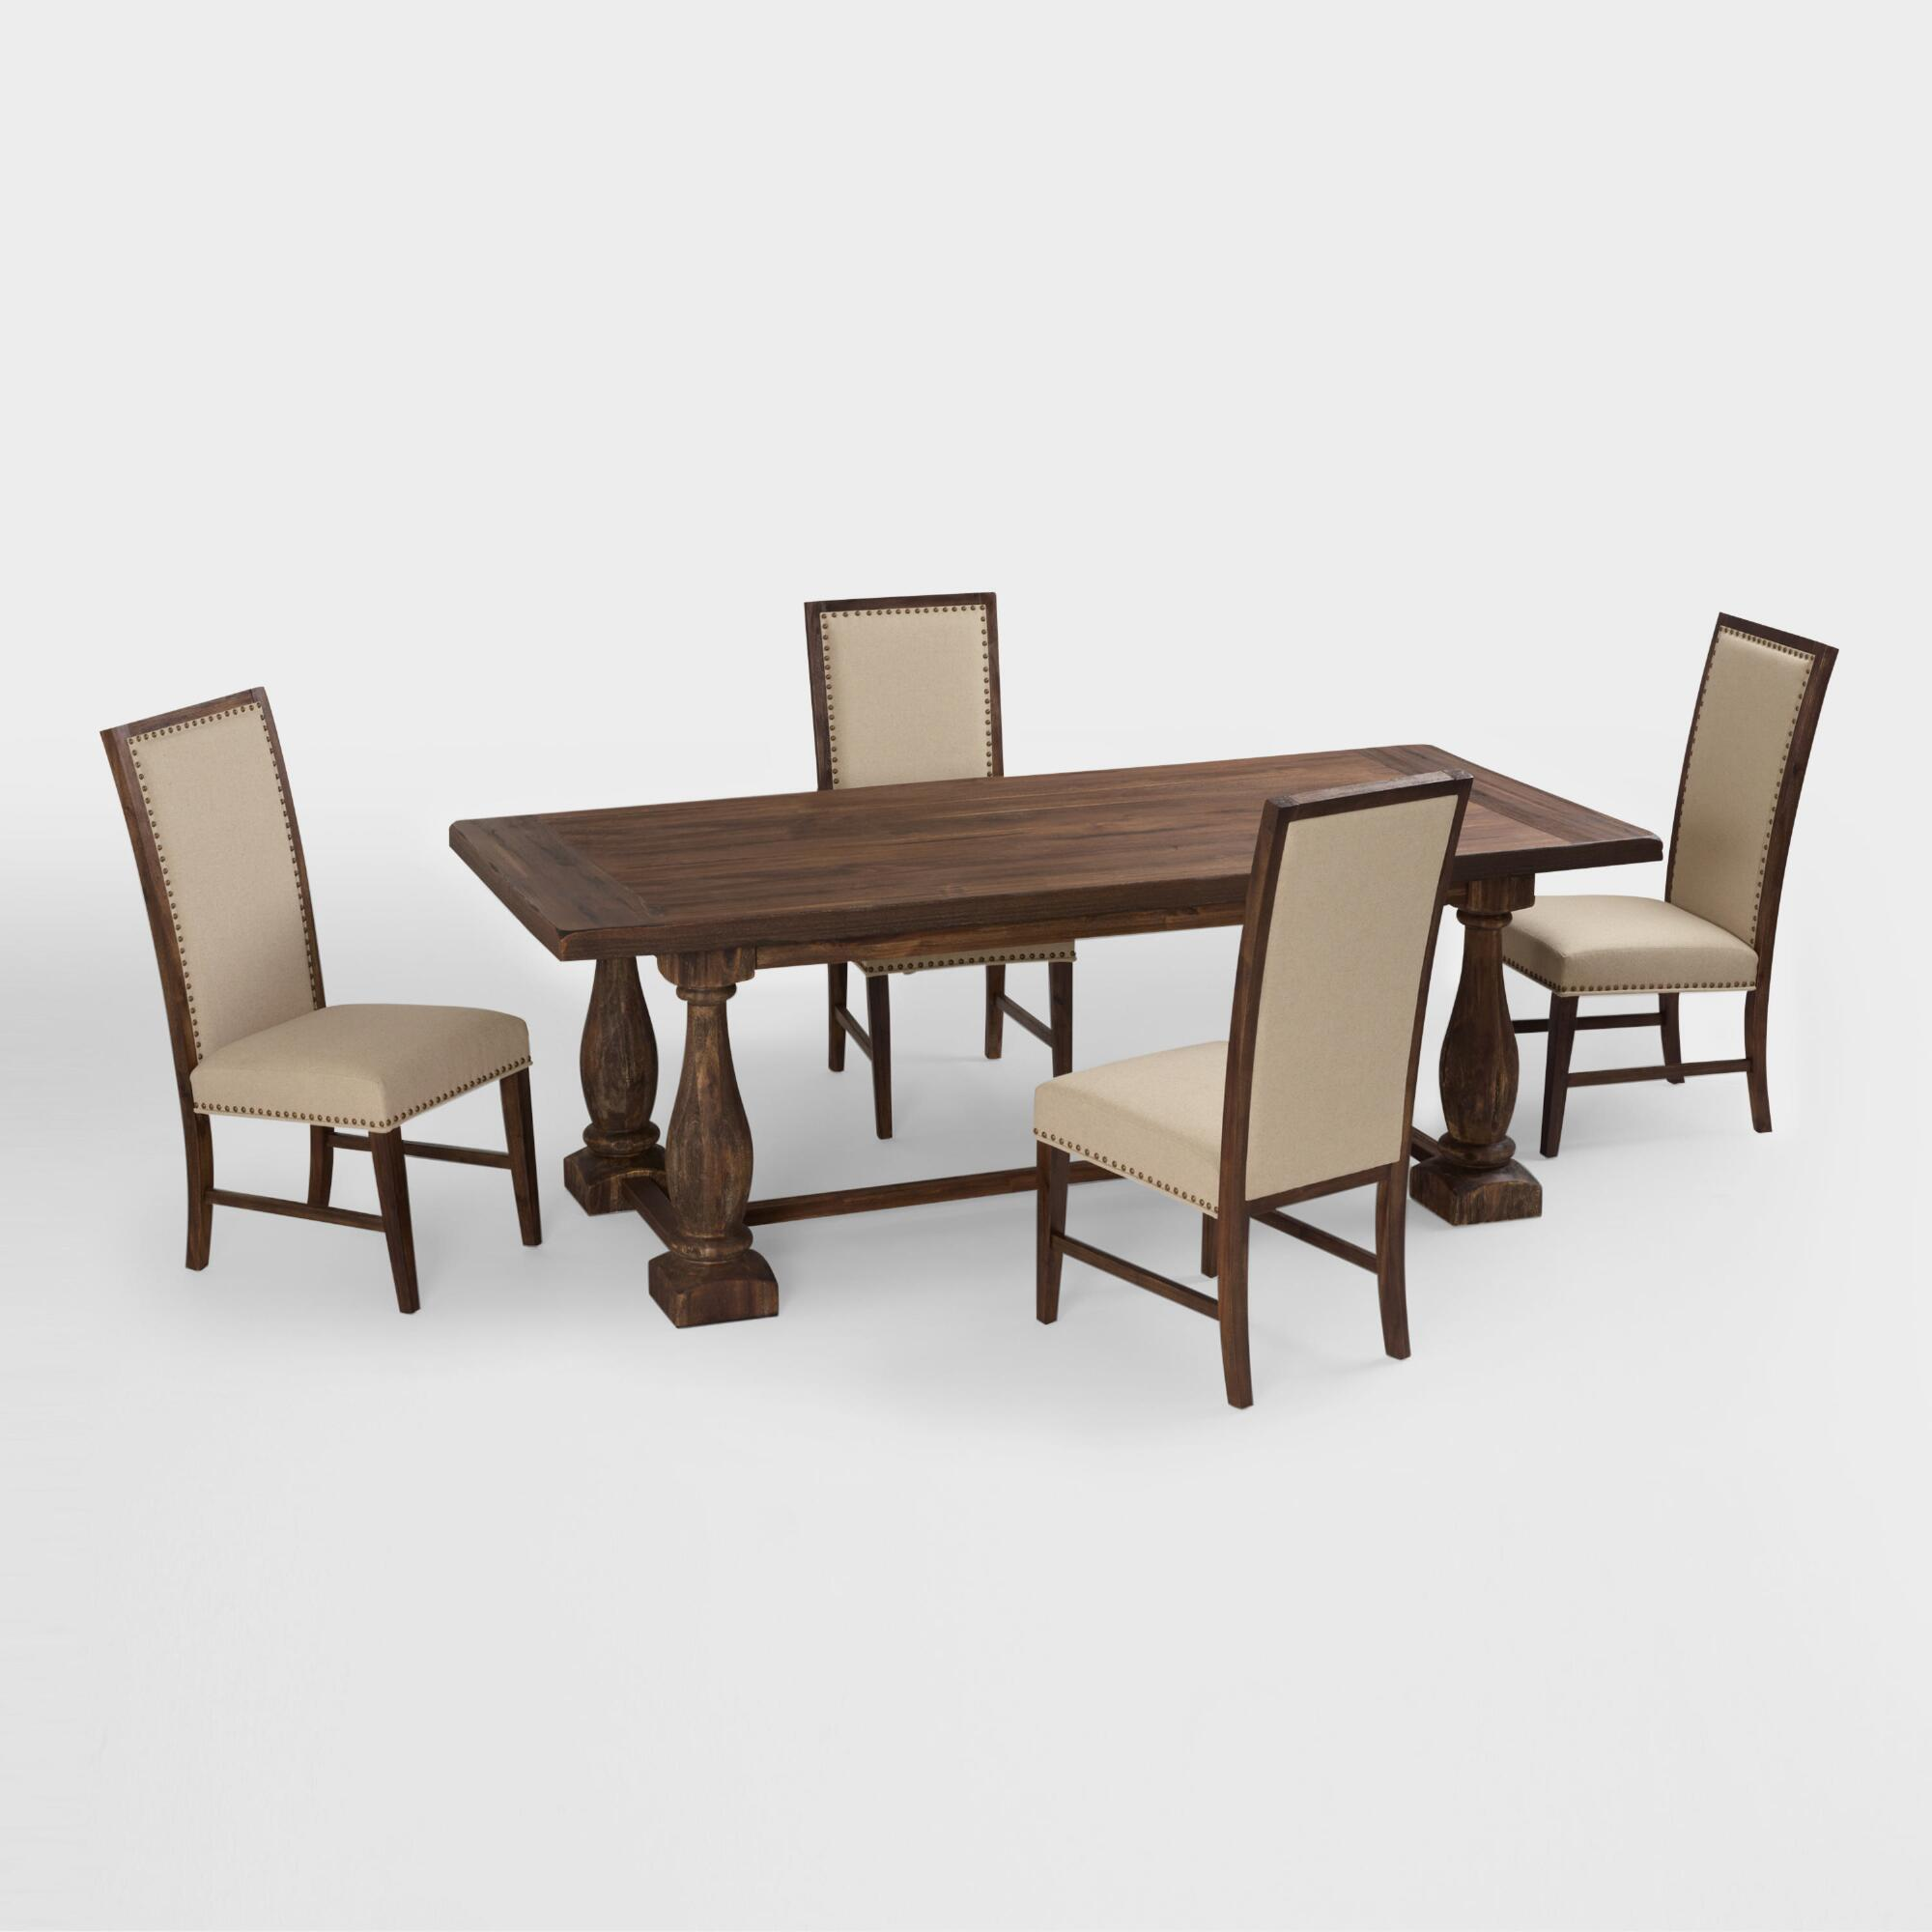 Fresh round dining table with chairs that tuck under for Dining room round table